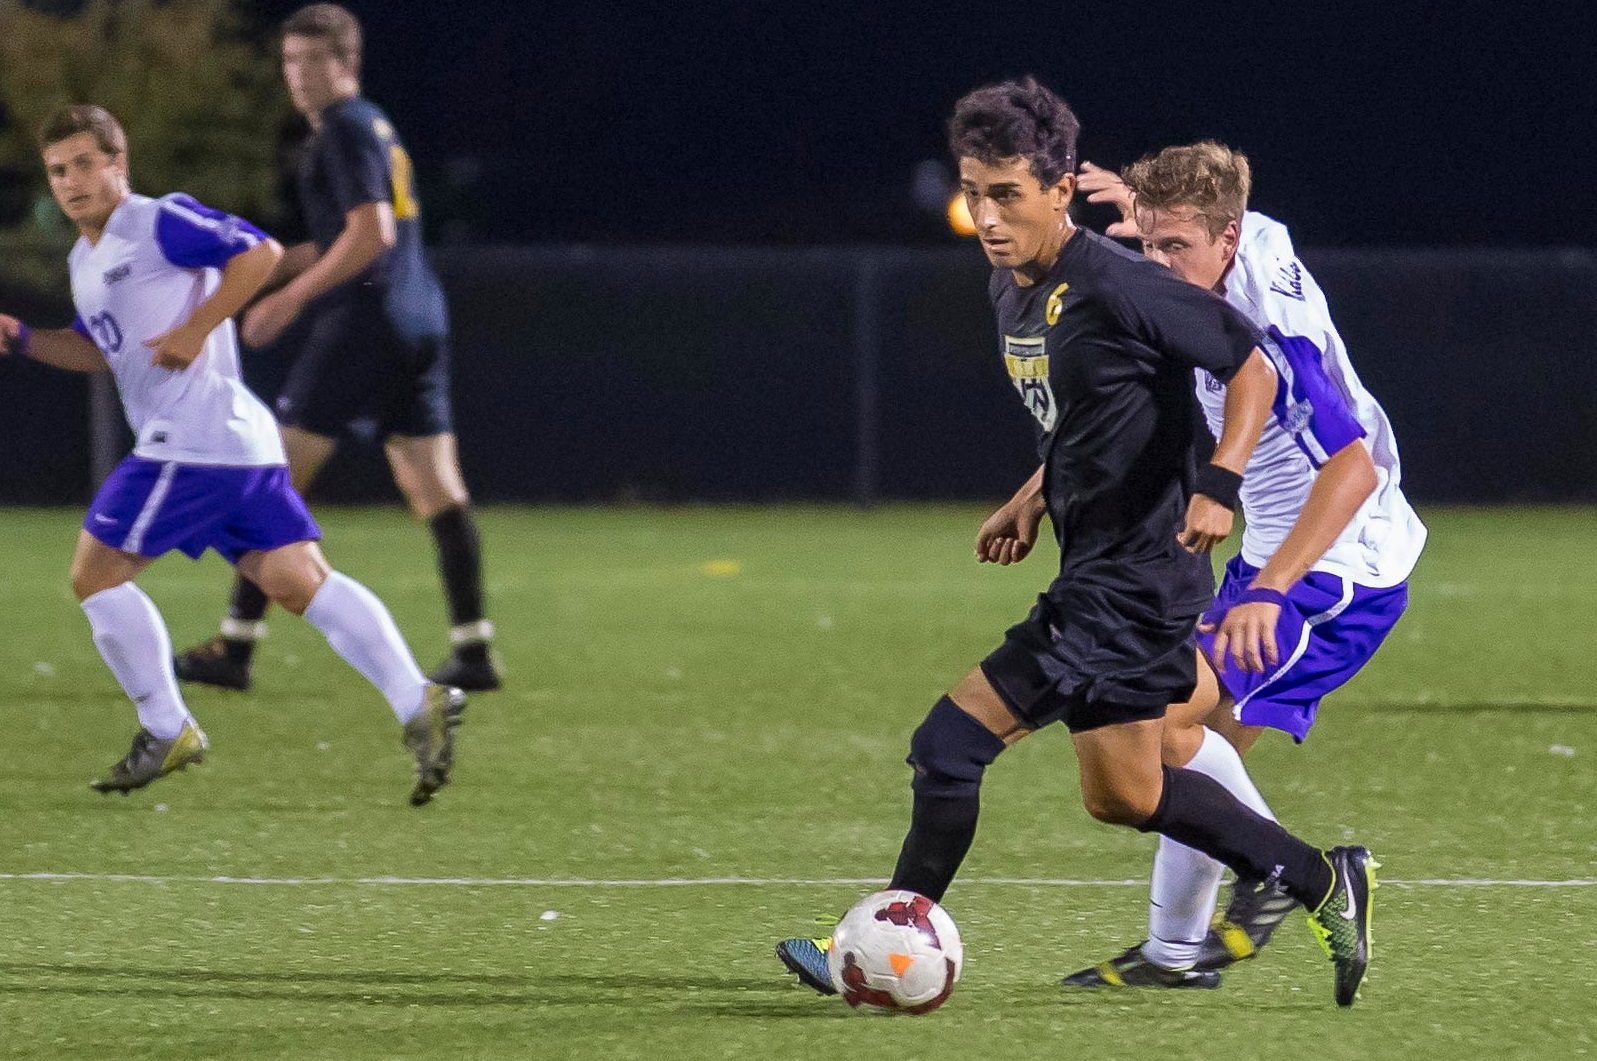 St. Bonaventure's Noel Orozco, No. 6 in brown, is versatile in the midfield. (Don Nieman/Special to The News)